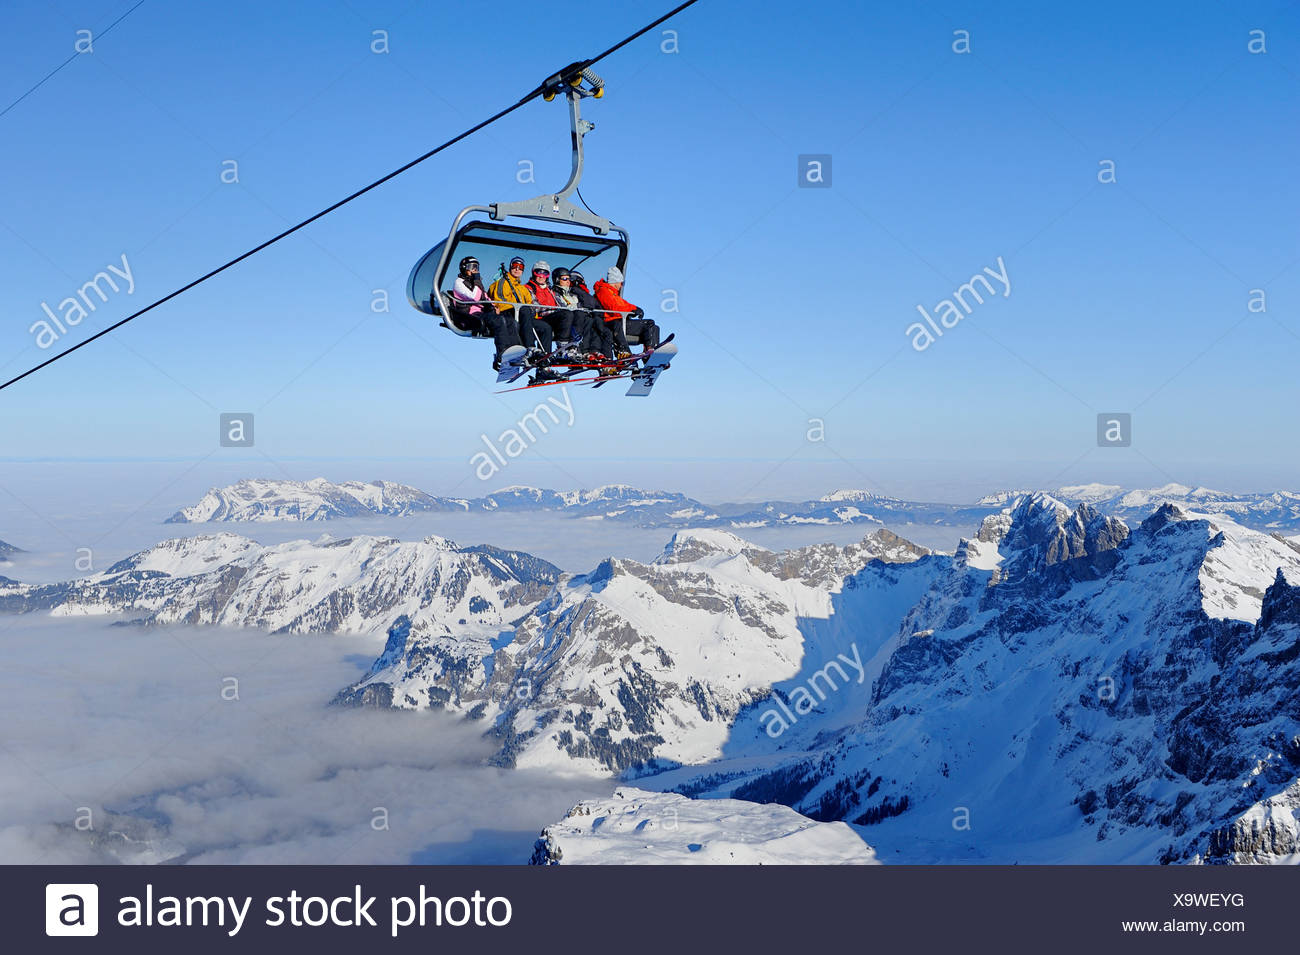 Skiers in a chairlift heading towards Titlis mountain, Engelberg, Obwalden, Switzerland, Europe - Stock Image